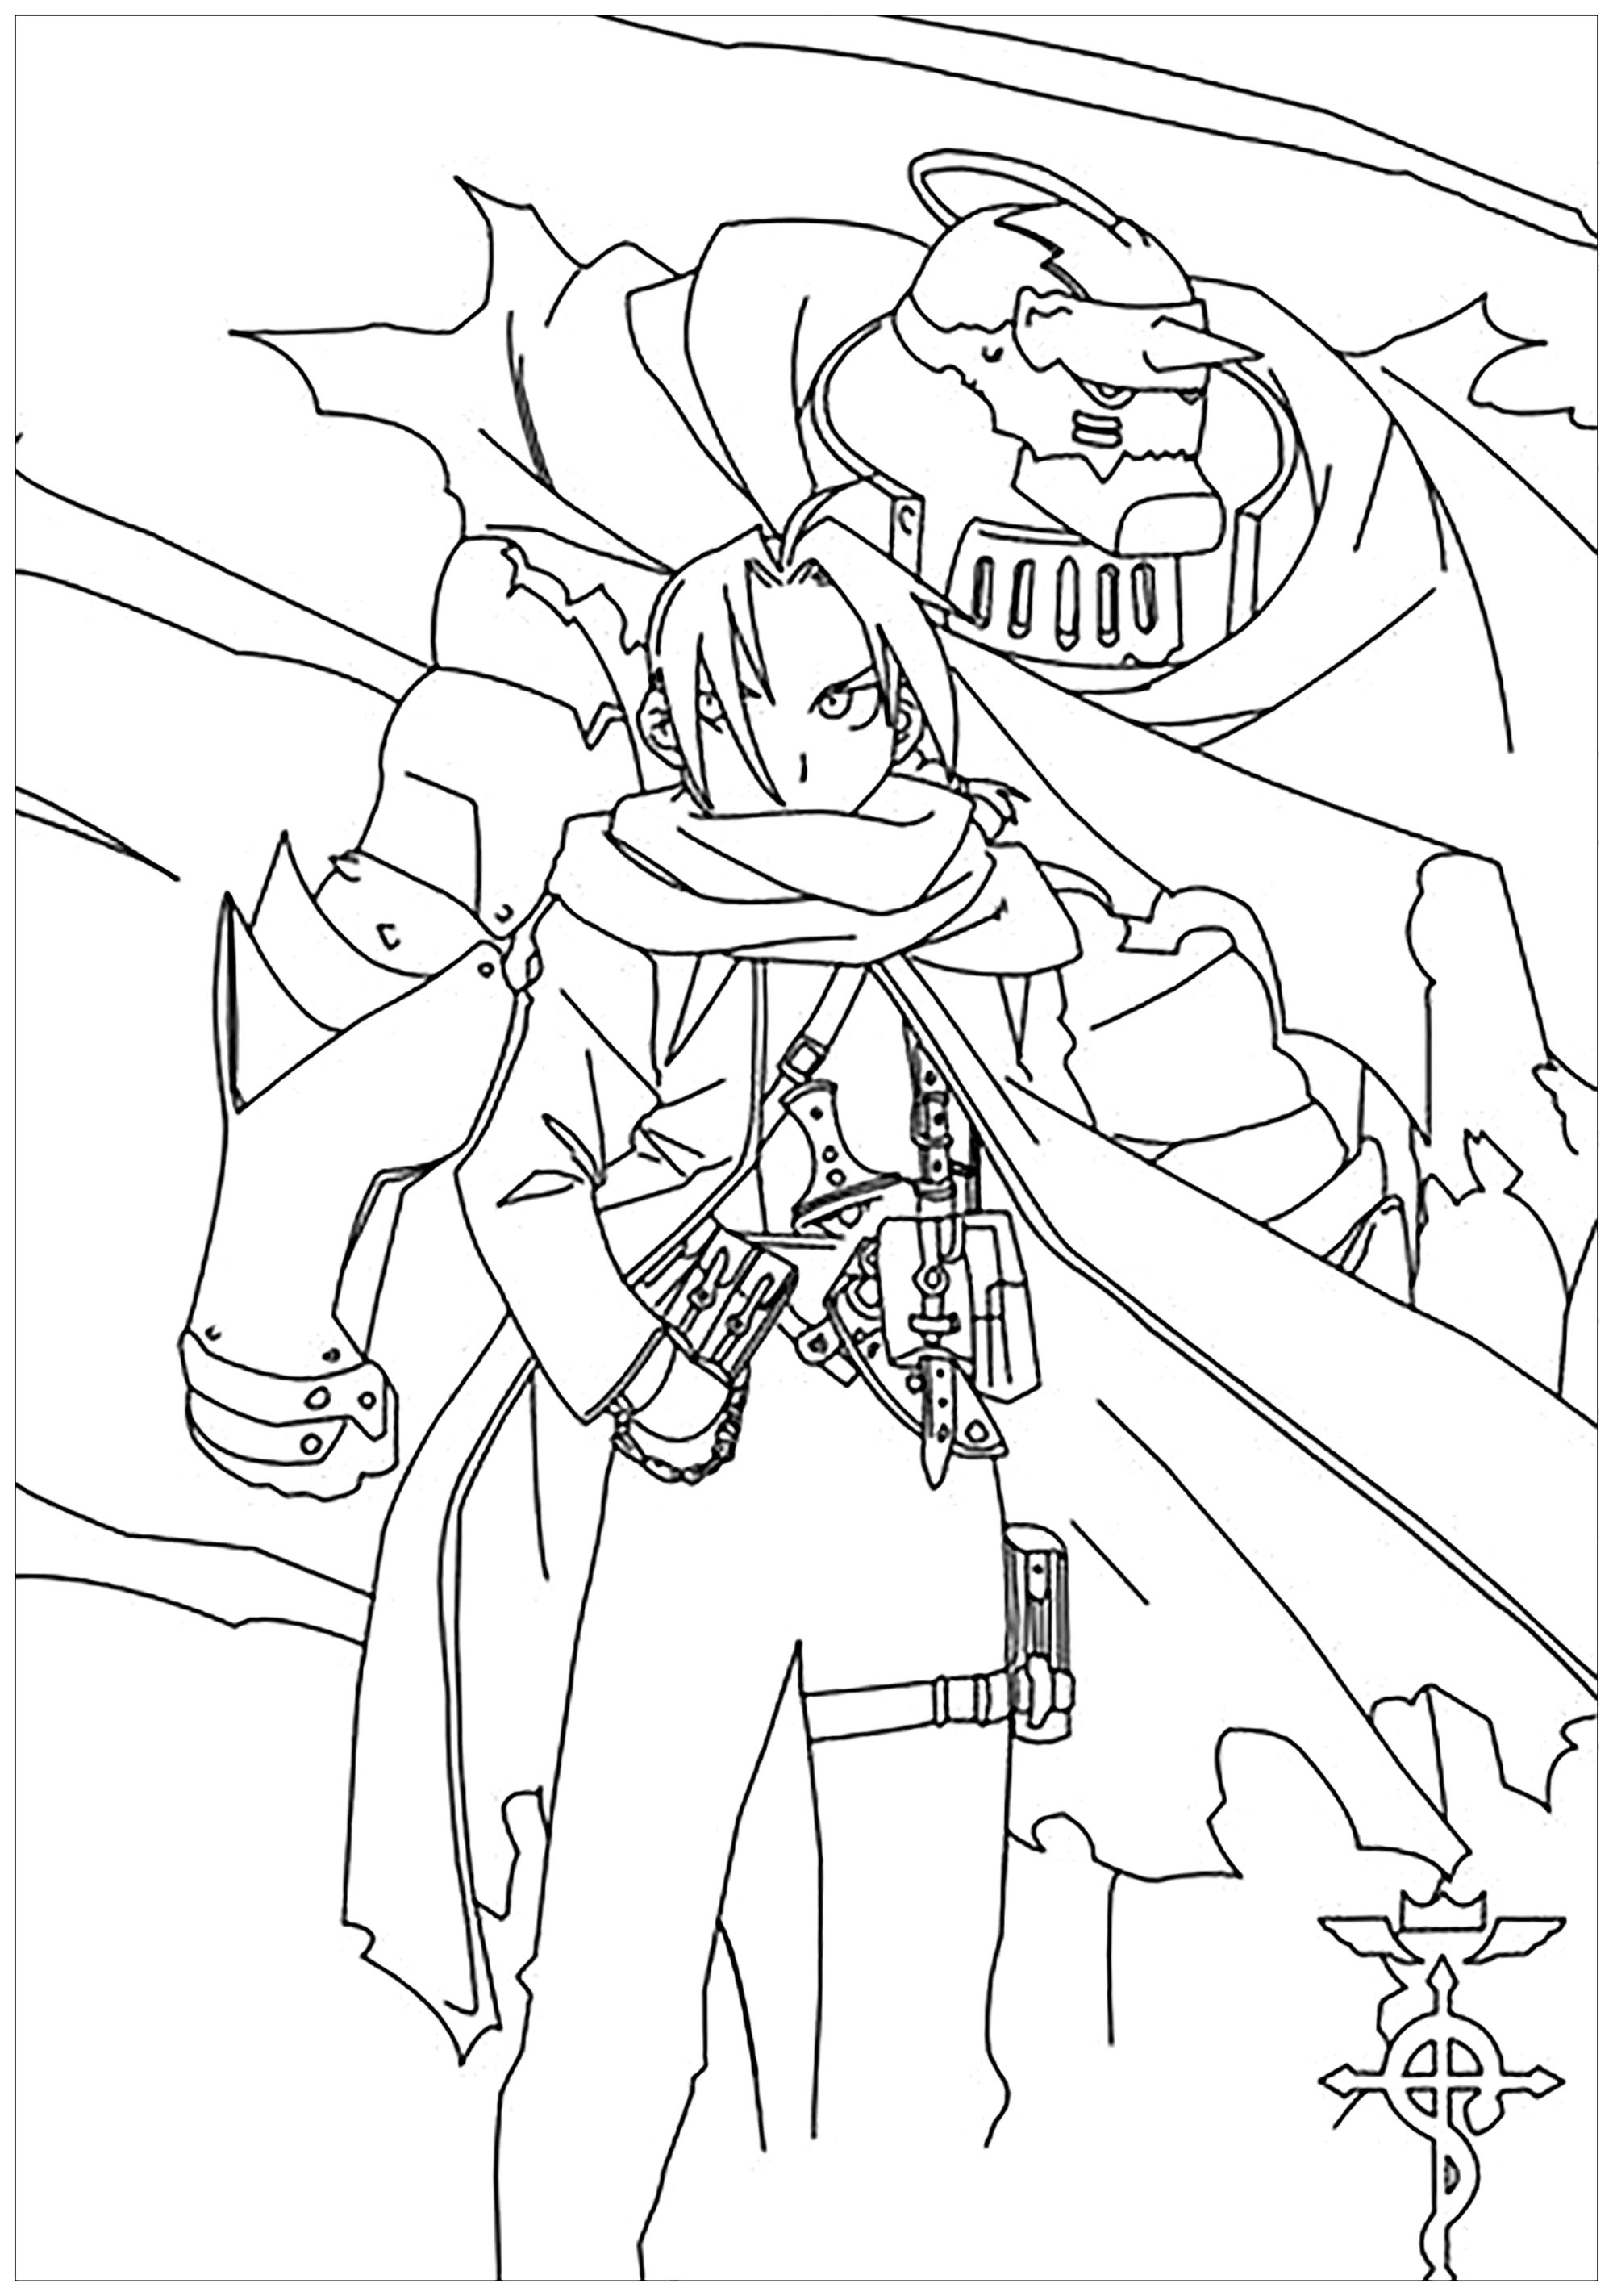 Free Full Metal Alchemist coloring page to print and color, for kids